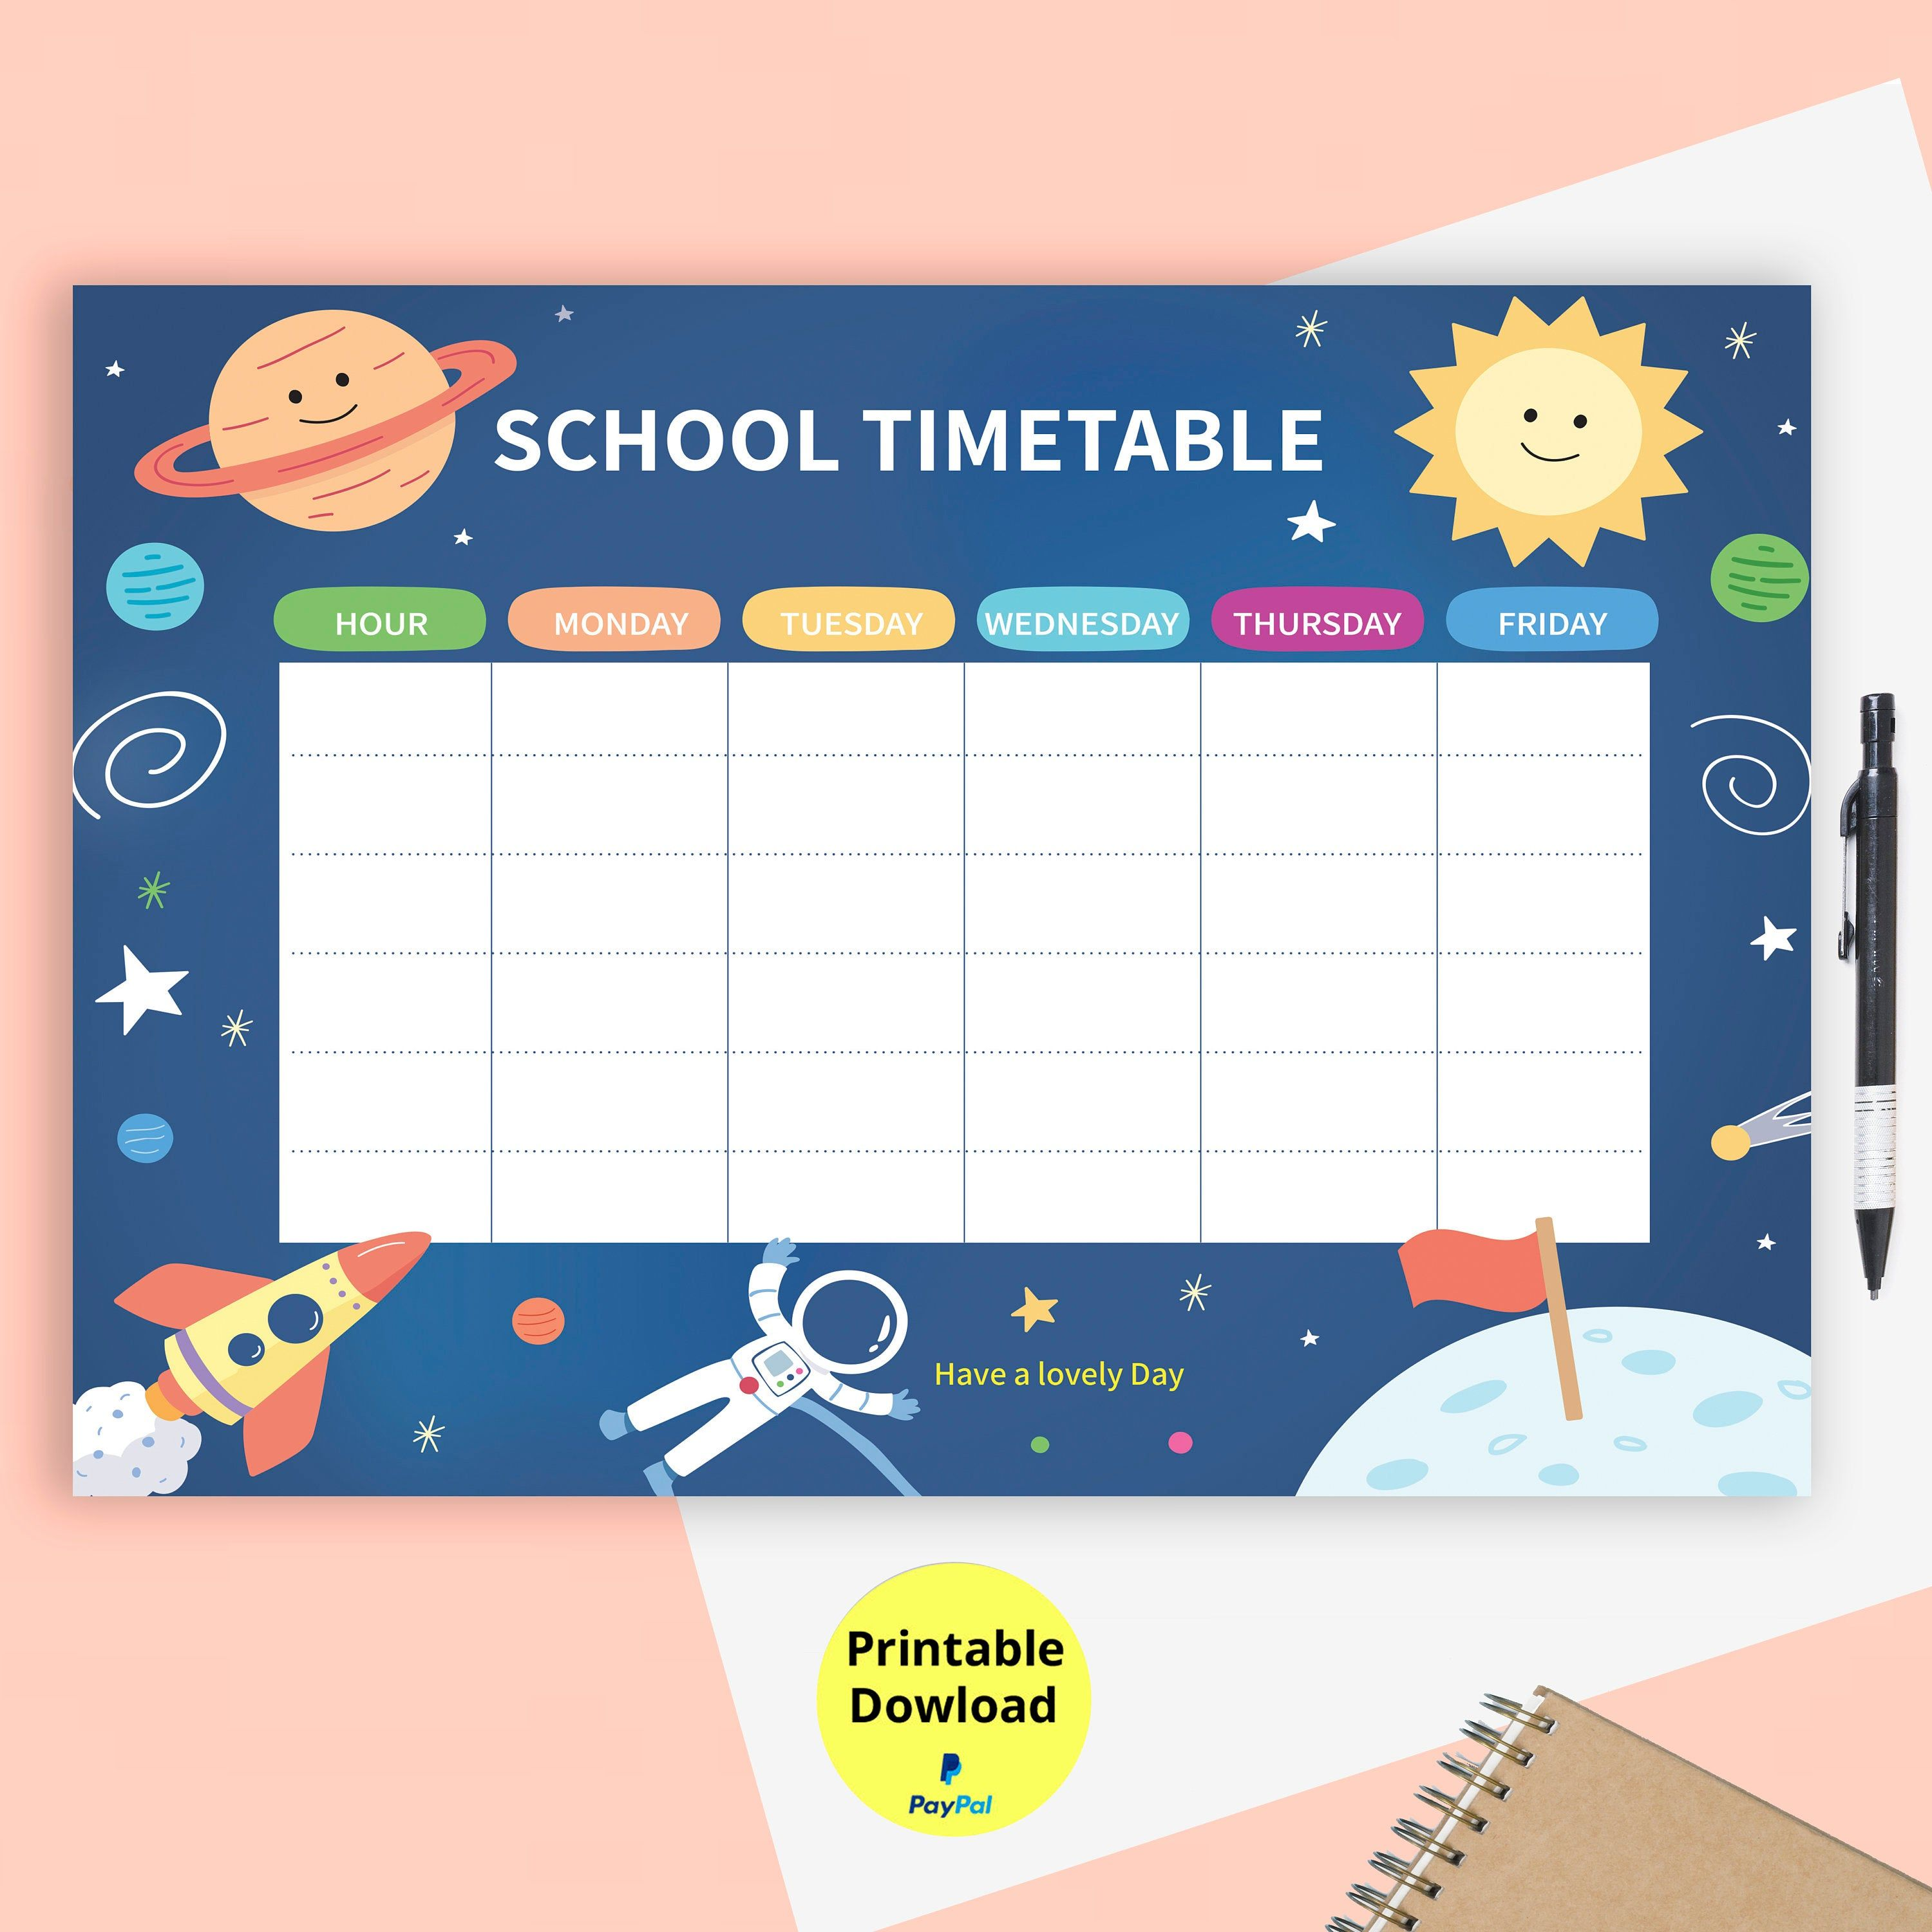 Weekly Planner Printable Weekly Printables School Timetable To Organize Free Vector Daily Schedule Home Schoo School Timetable Kids Planner Homeschool Planner